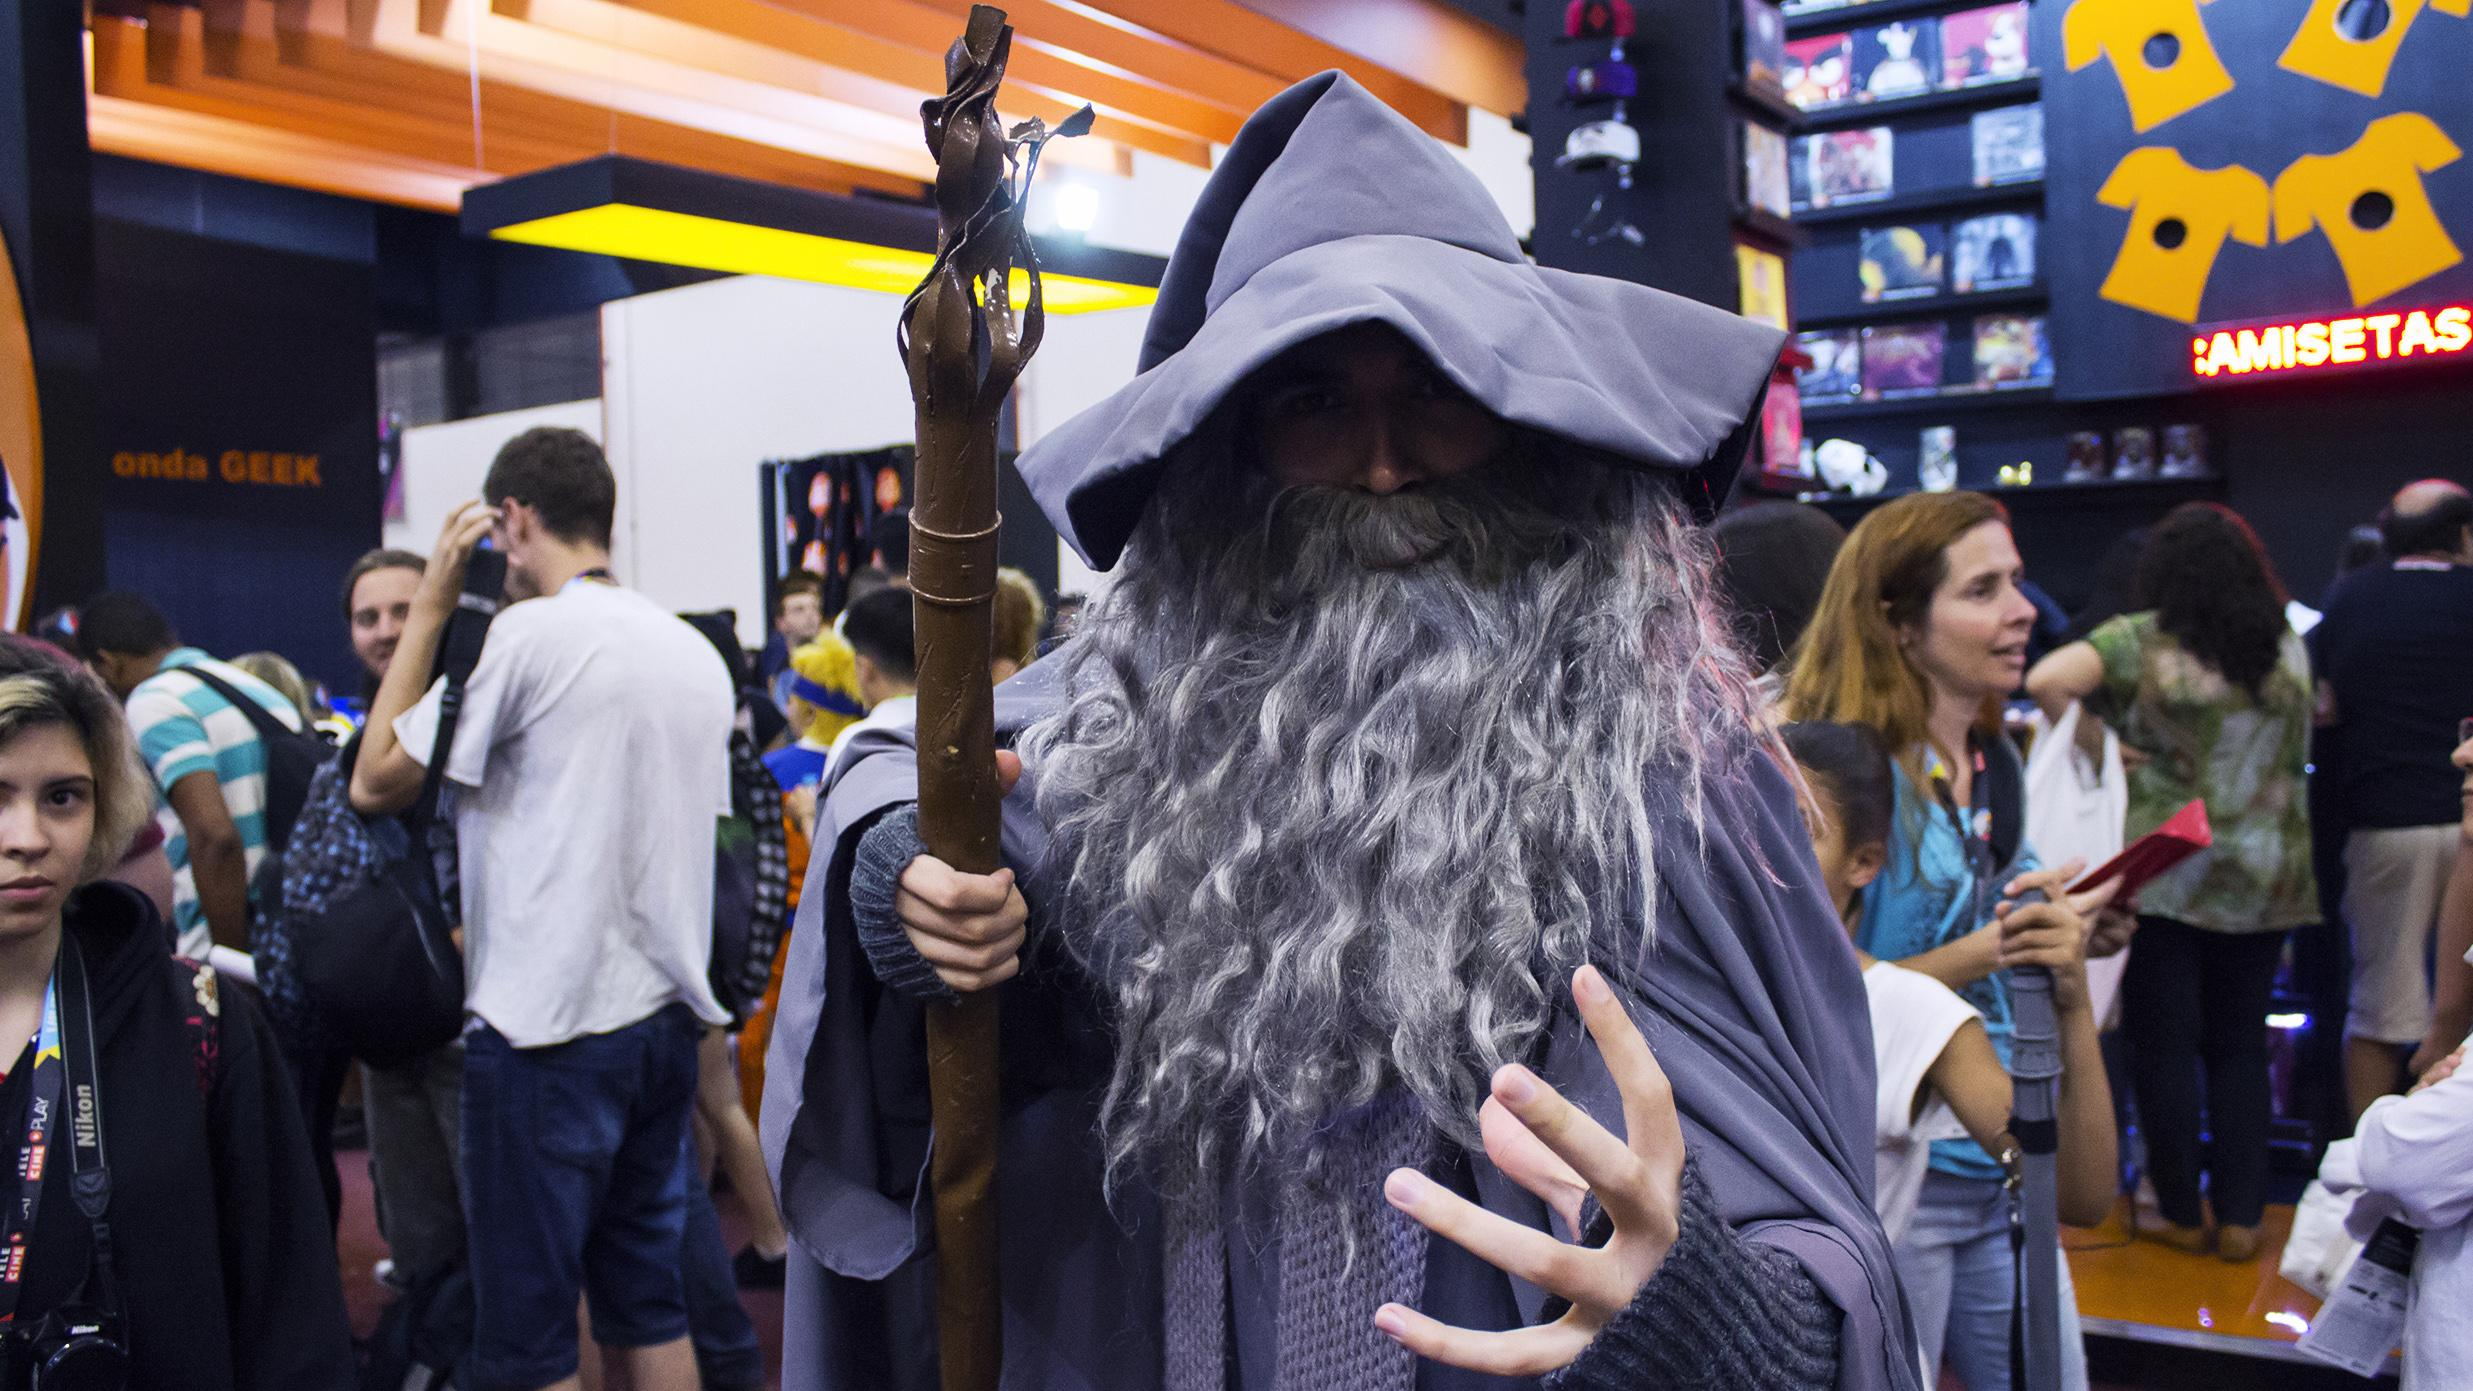 A man dresses like Gandalf the wizard. He has a grey beard, hat and robes. He is holding a big stick.